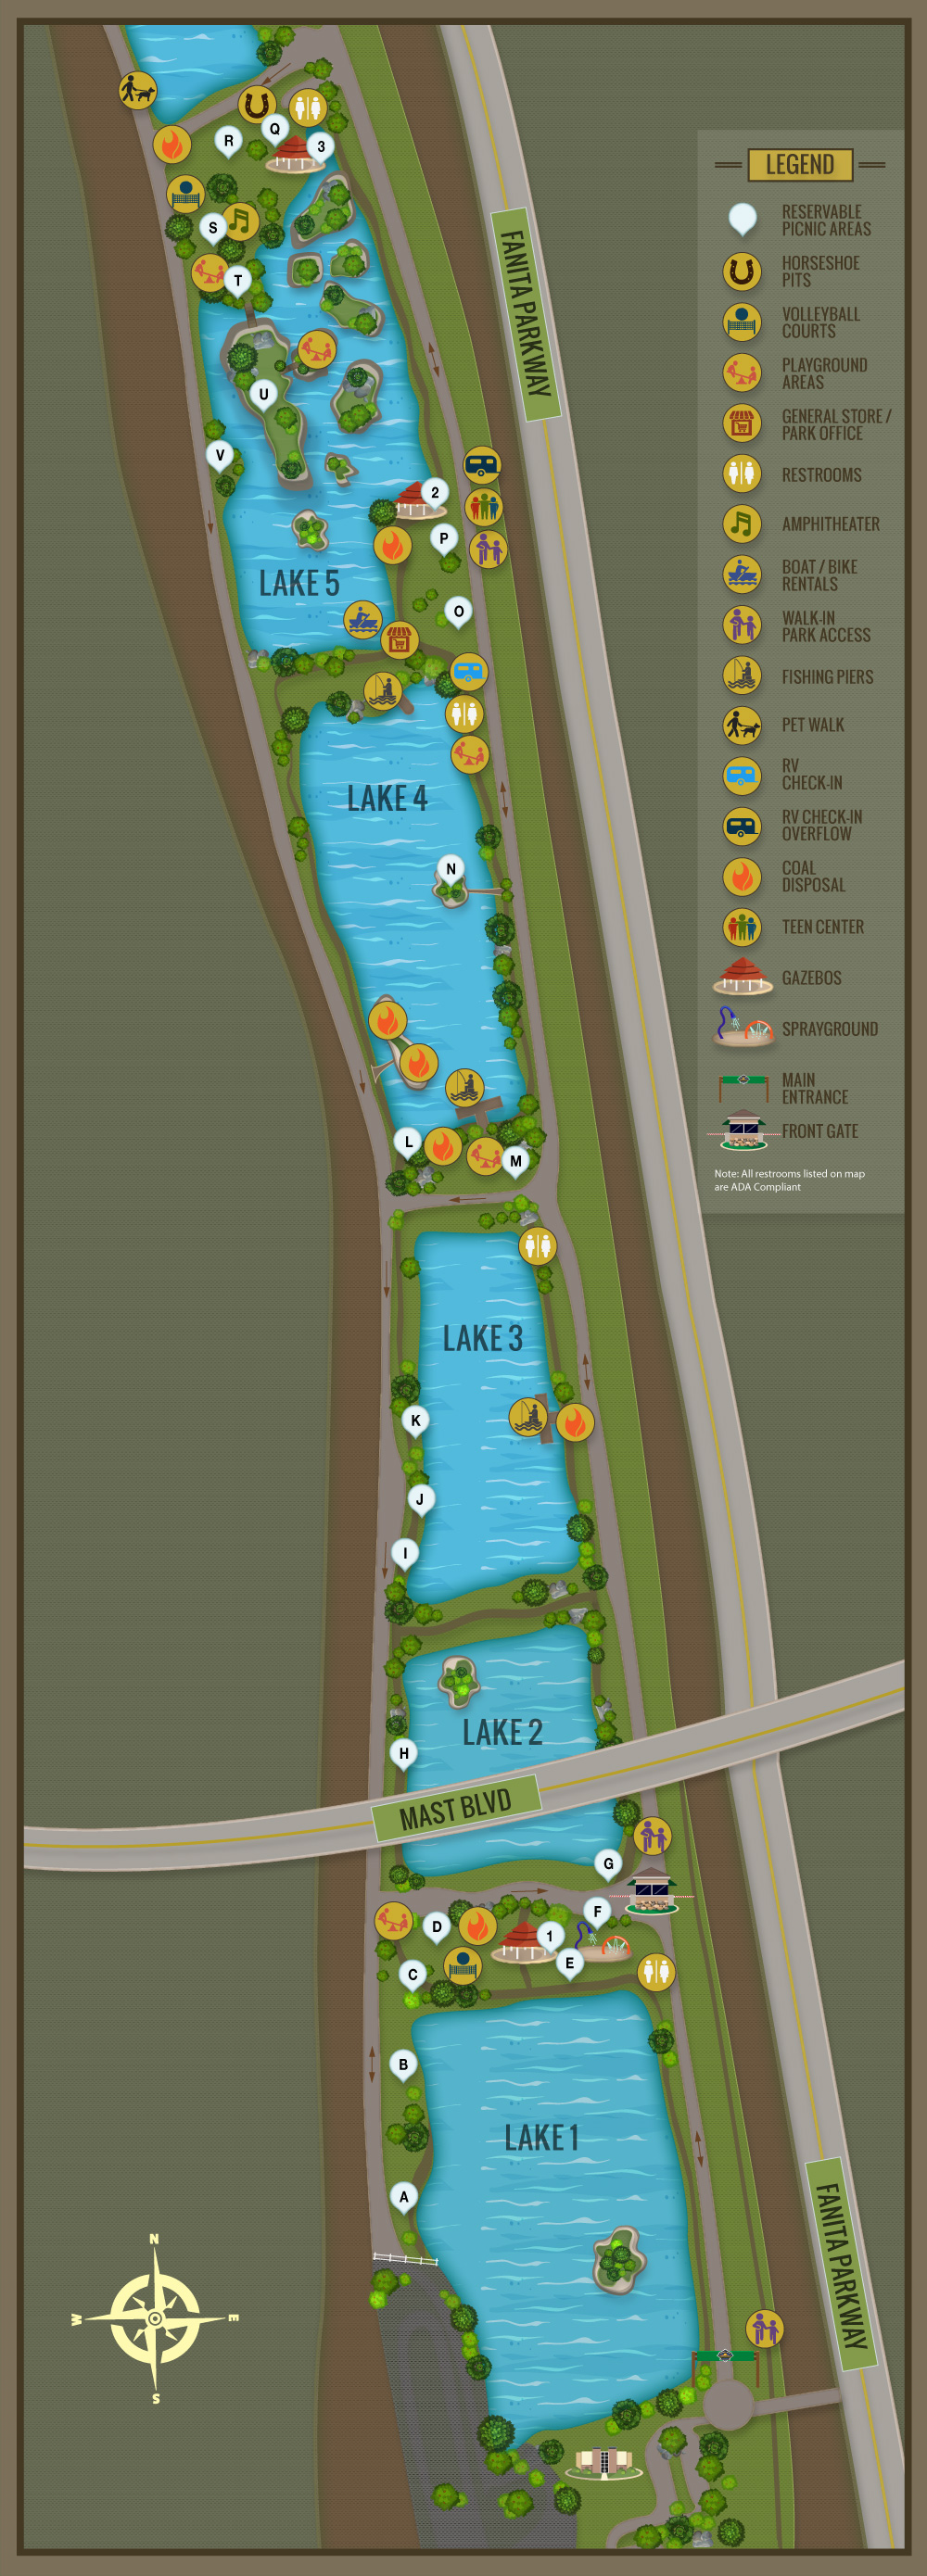 Day Use Map New - Santee Lakes